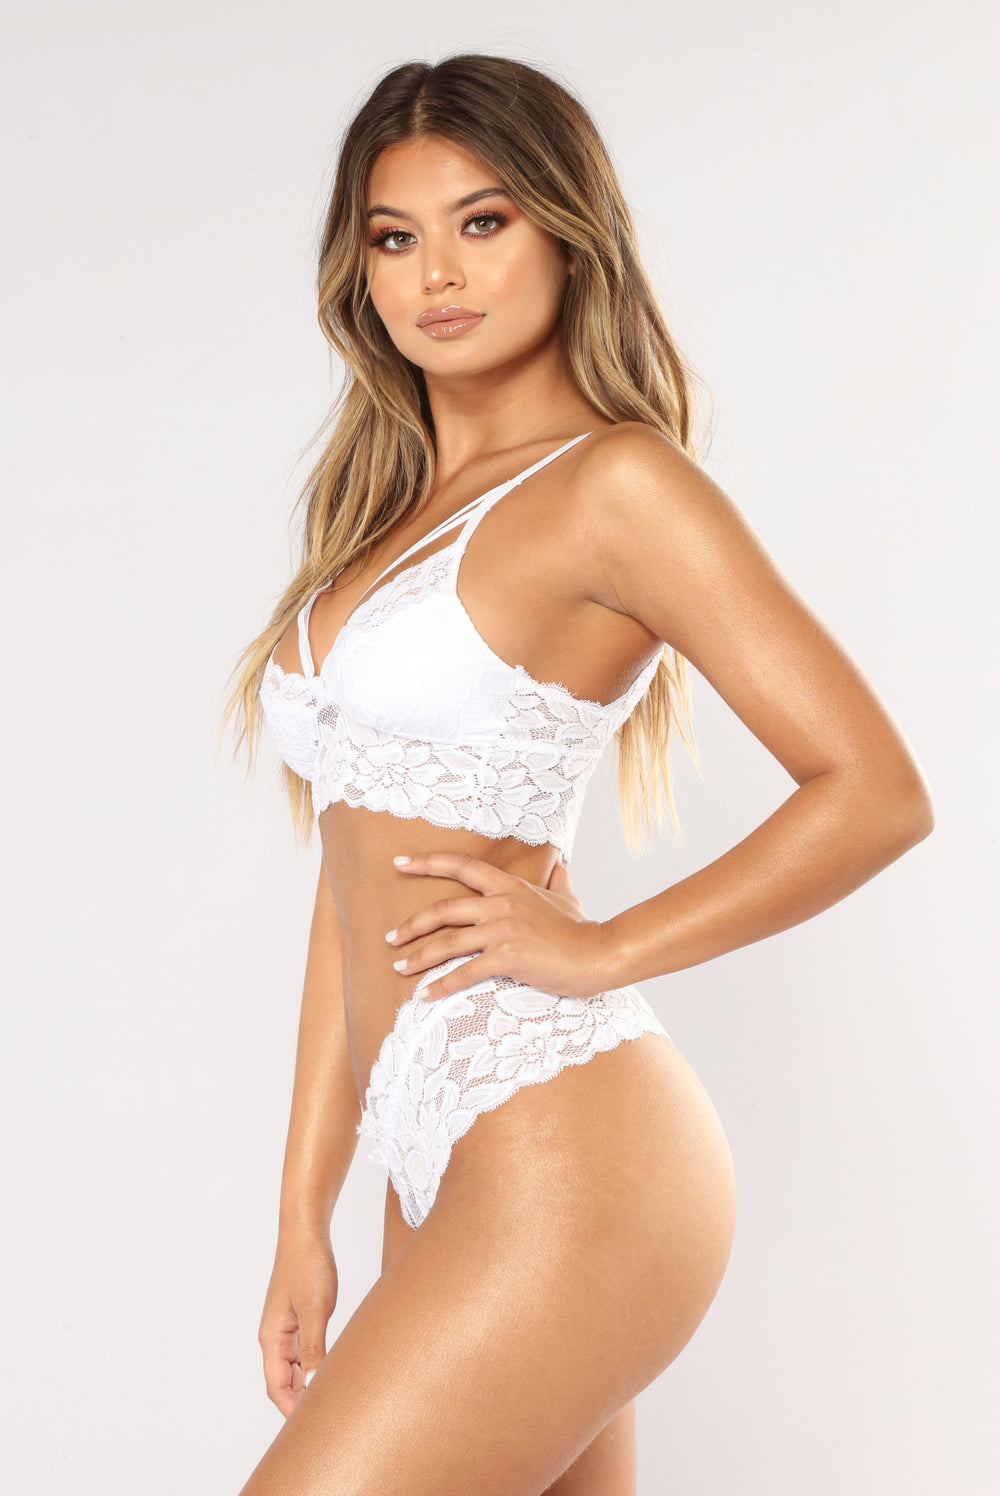 Nightly Craving Bra And Panty Set - White